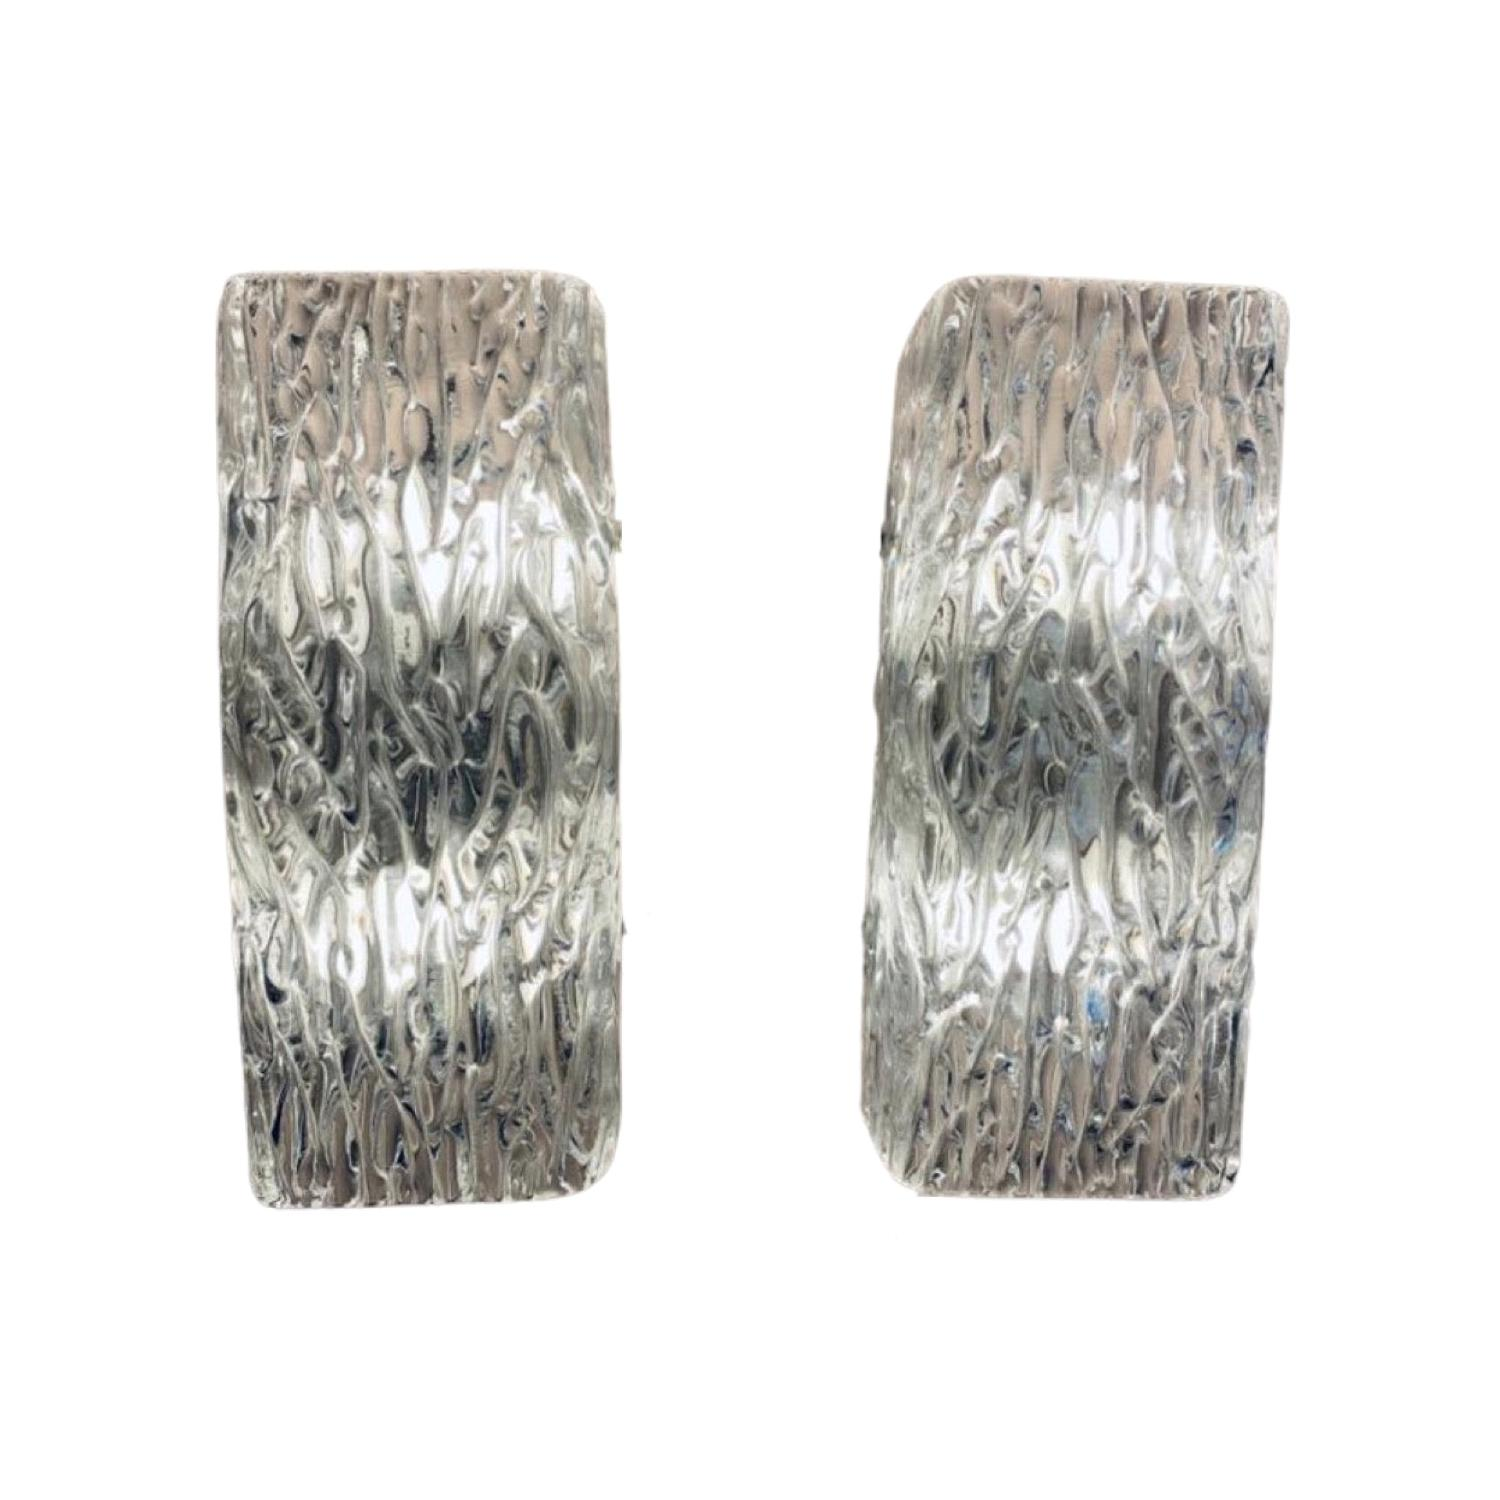 Pair of Small 1960s Kalmar Waved Textured Glass & Metal Wall Lights or Sconces